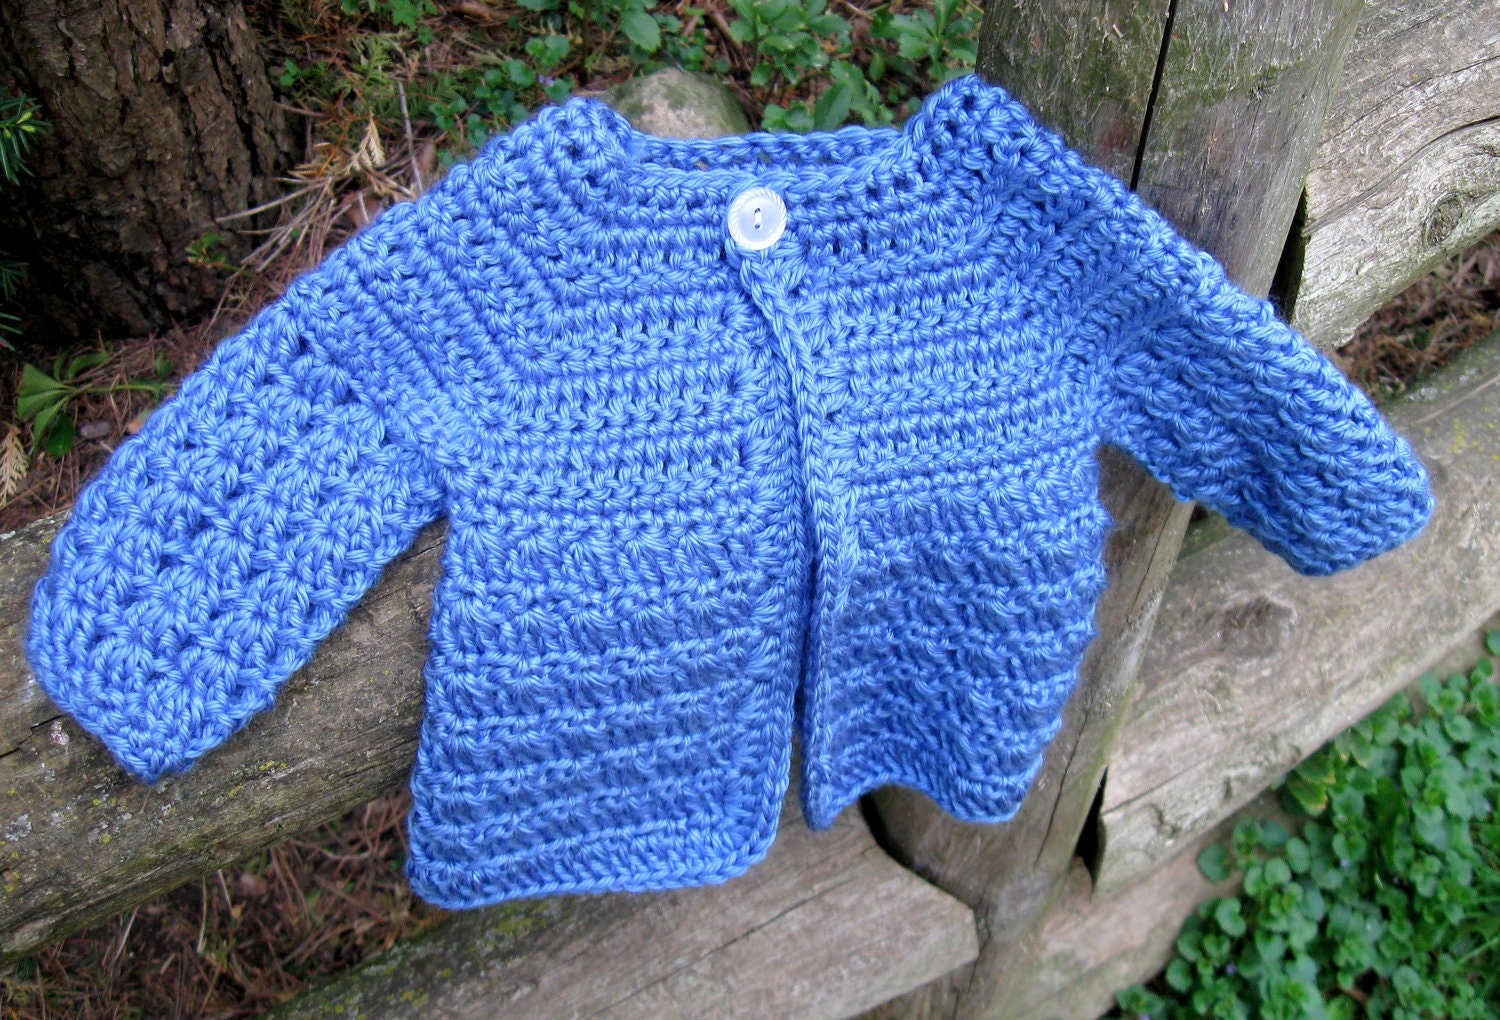 Crochet Patterns Baby Boy : Crochet Pattern Baby Sweater Perfect for Boys or Girls